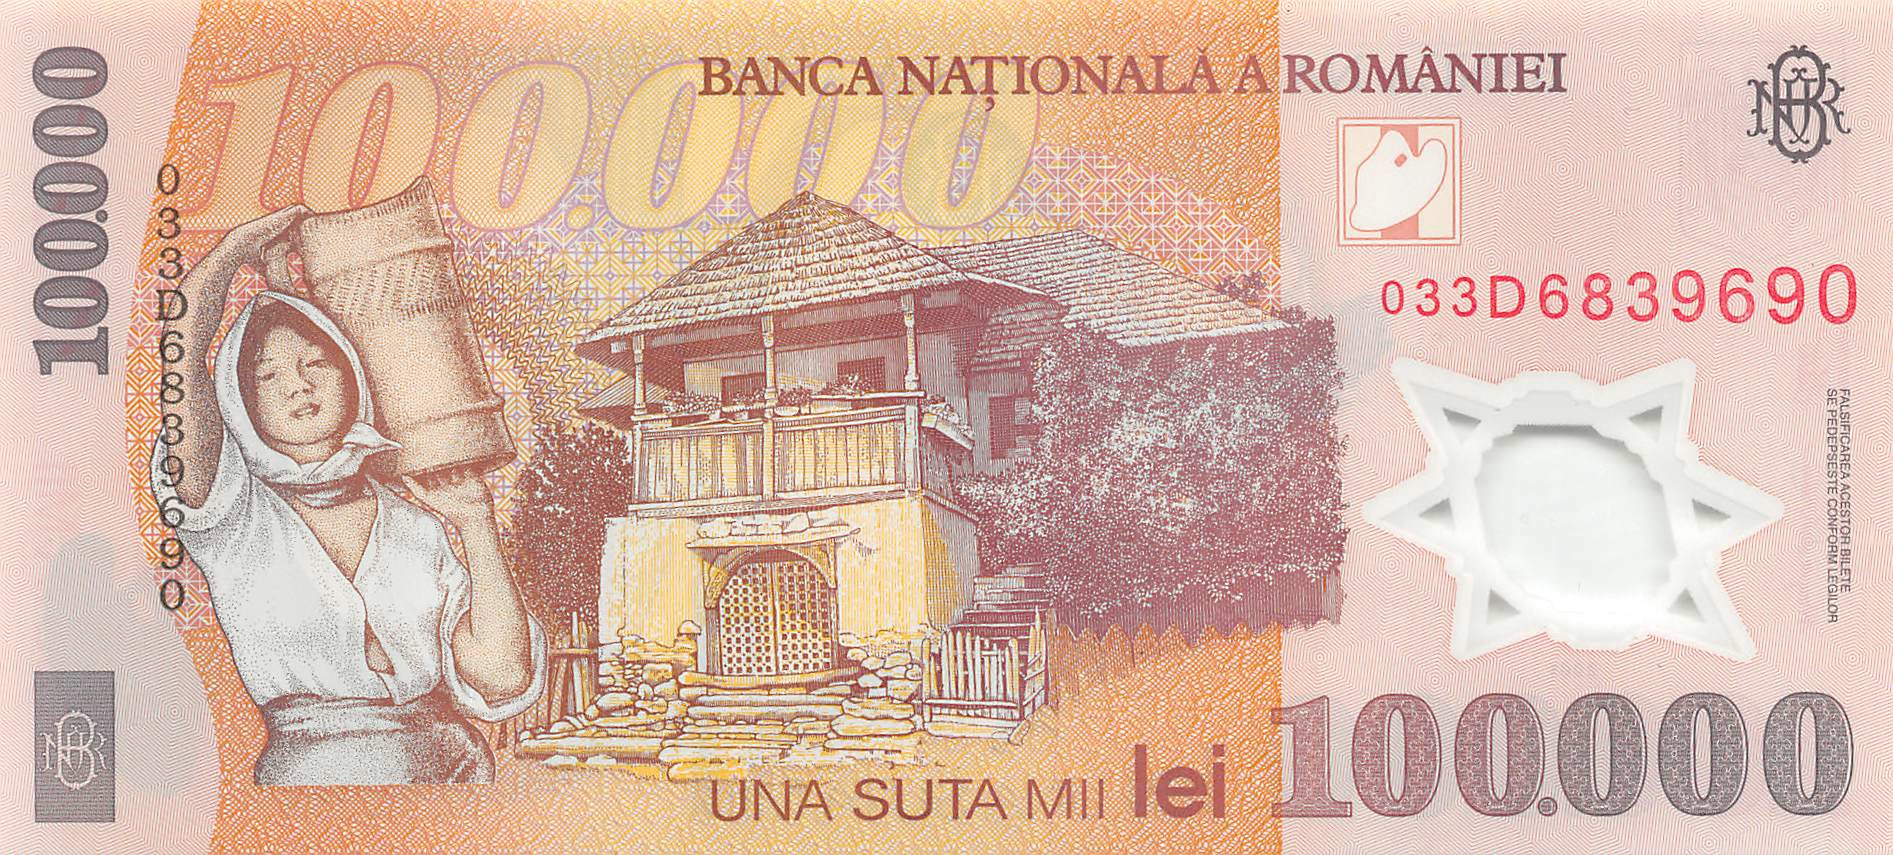 Romania 100,000 Lei Banknote 2001 UNC P-114a Polymer Europe Paper Money